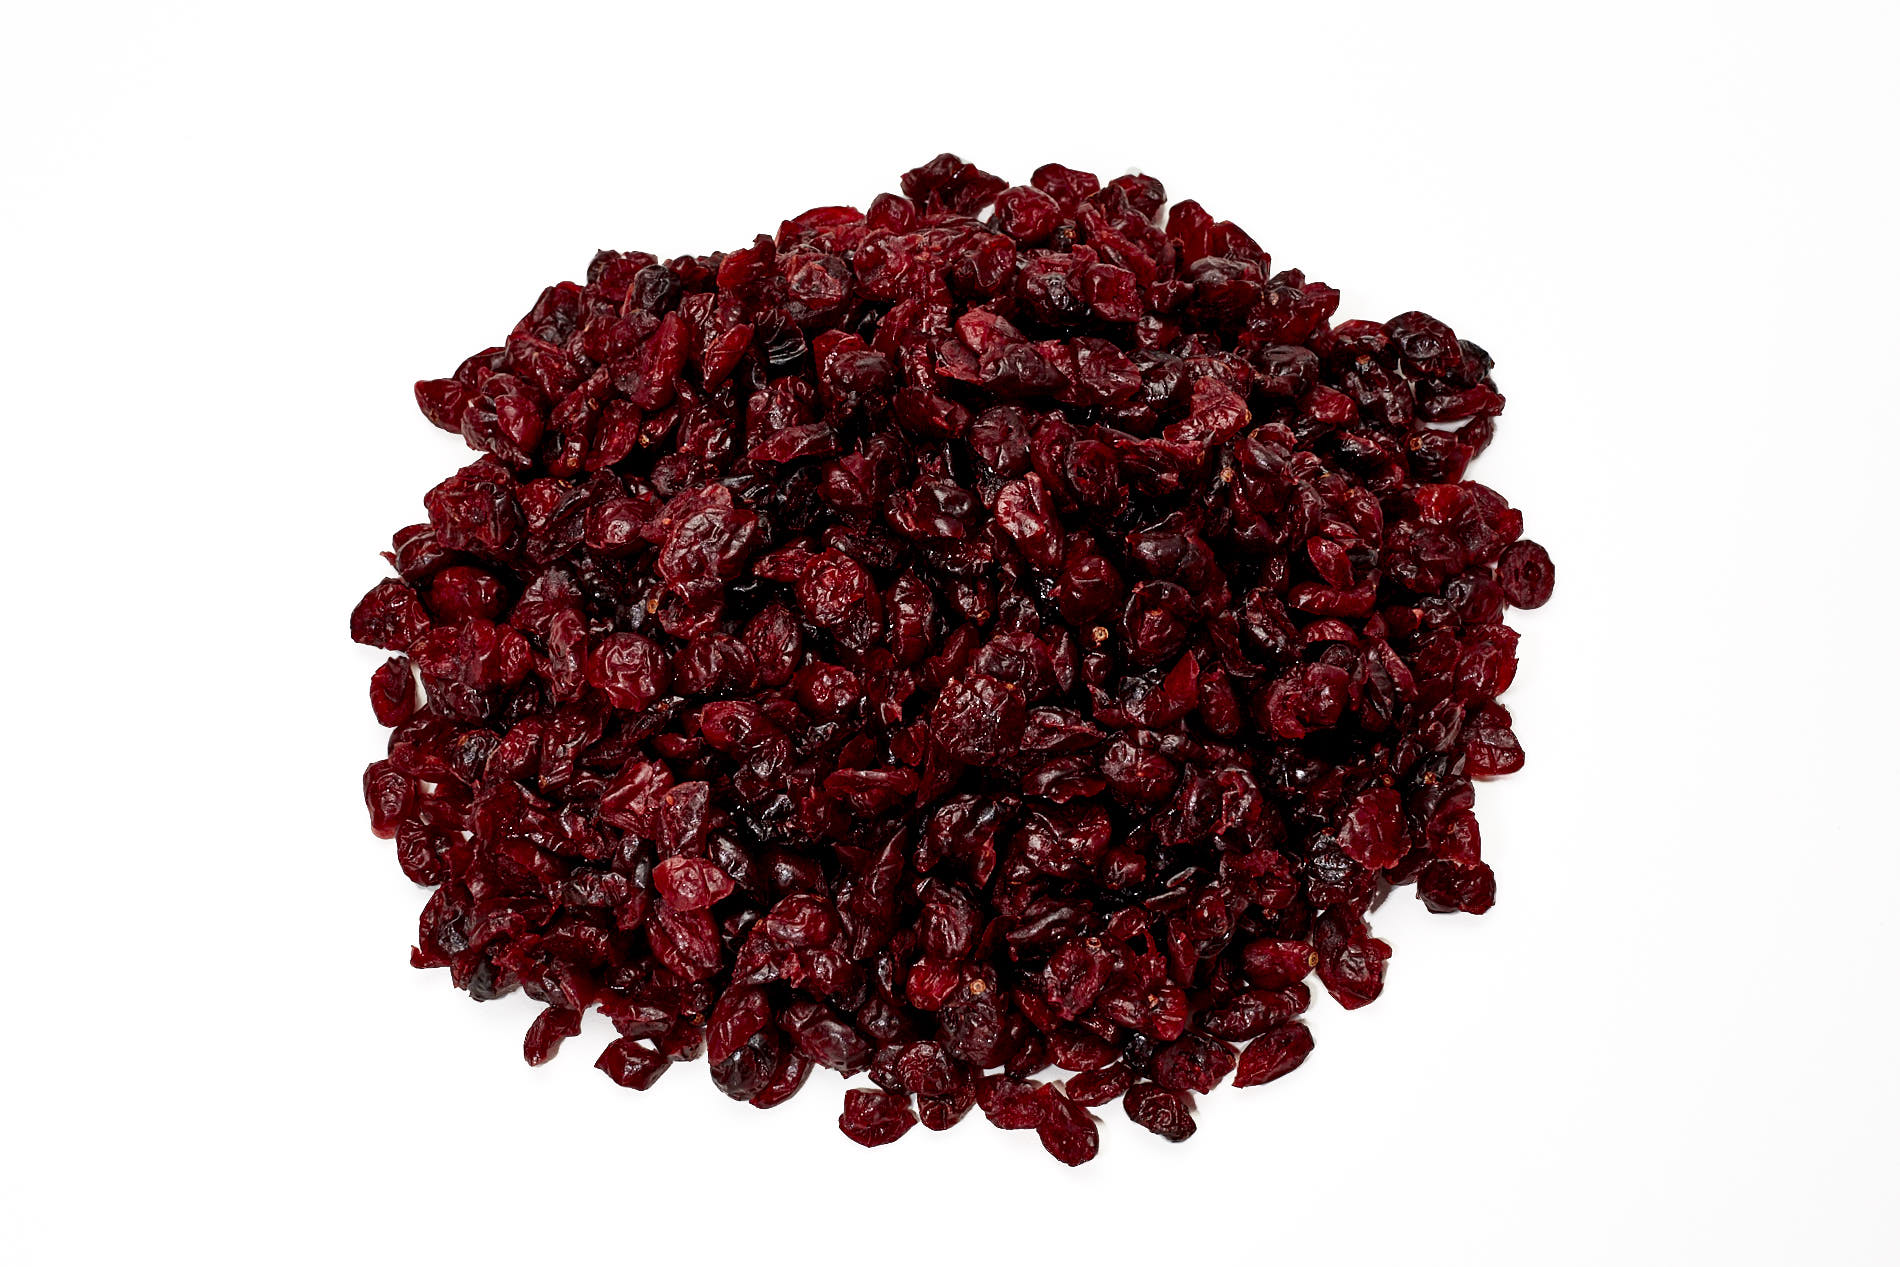 Dried cranberries craisins